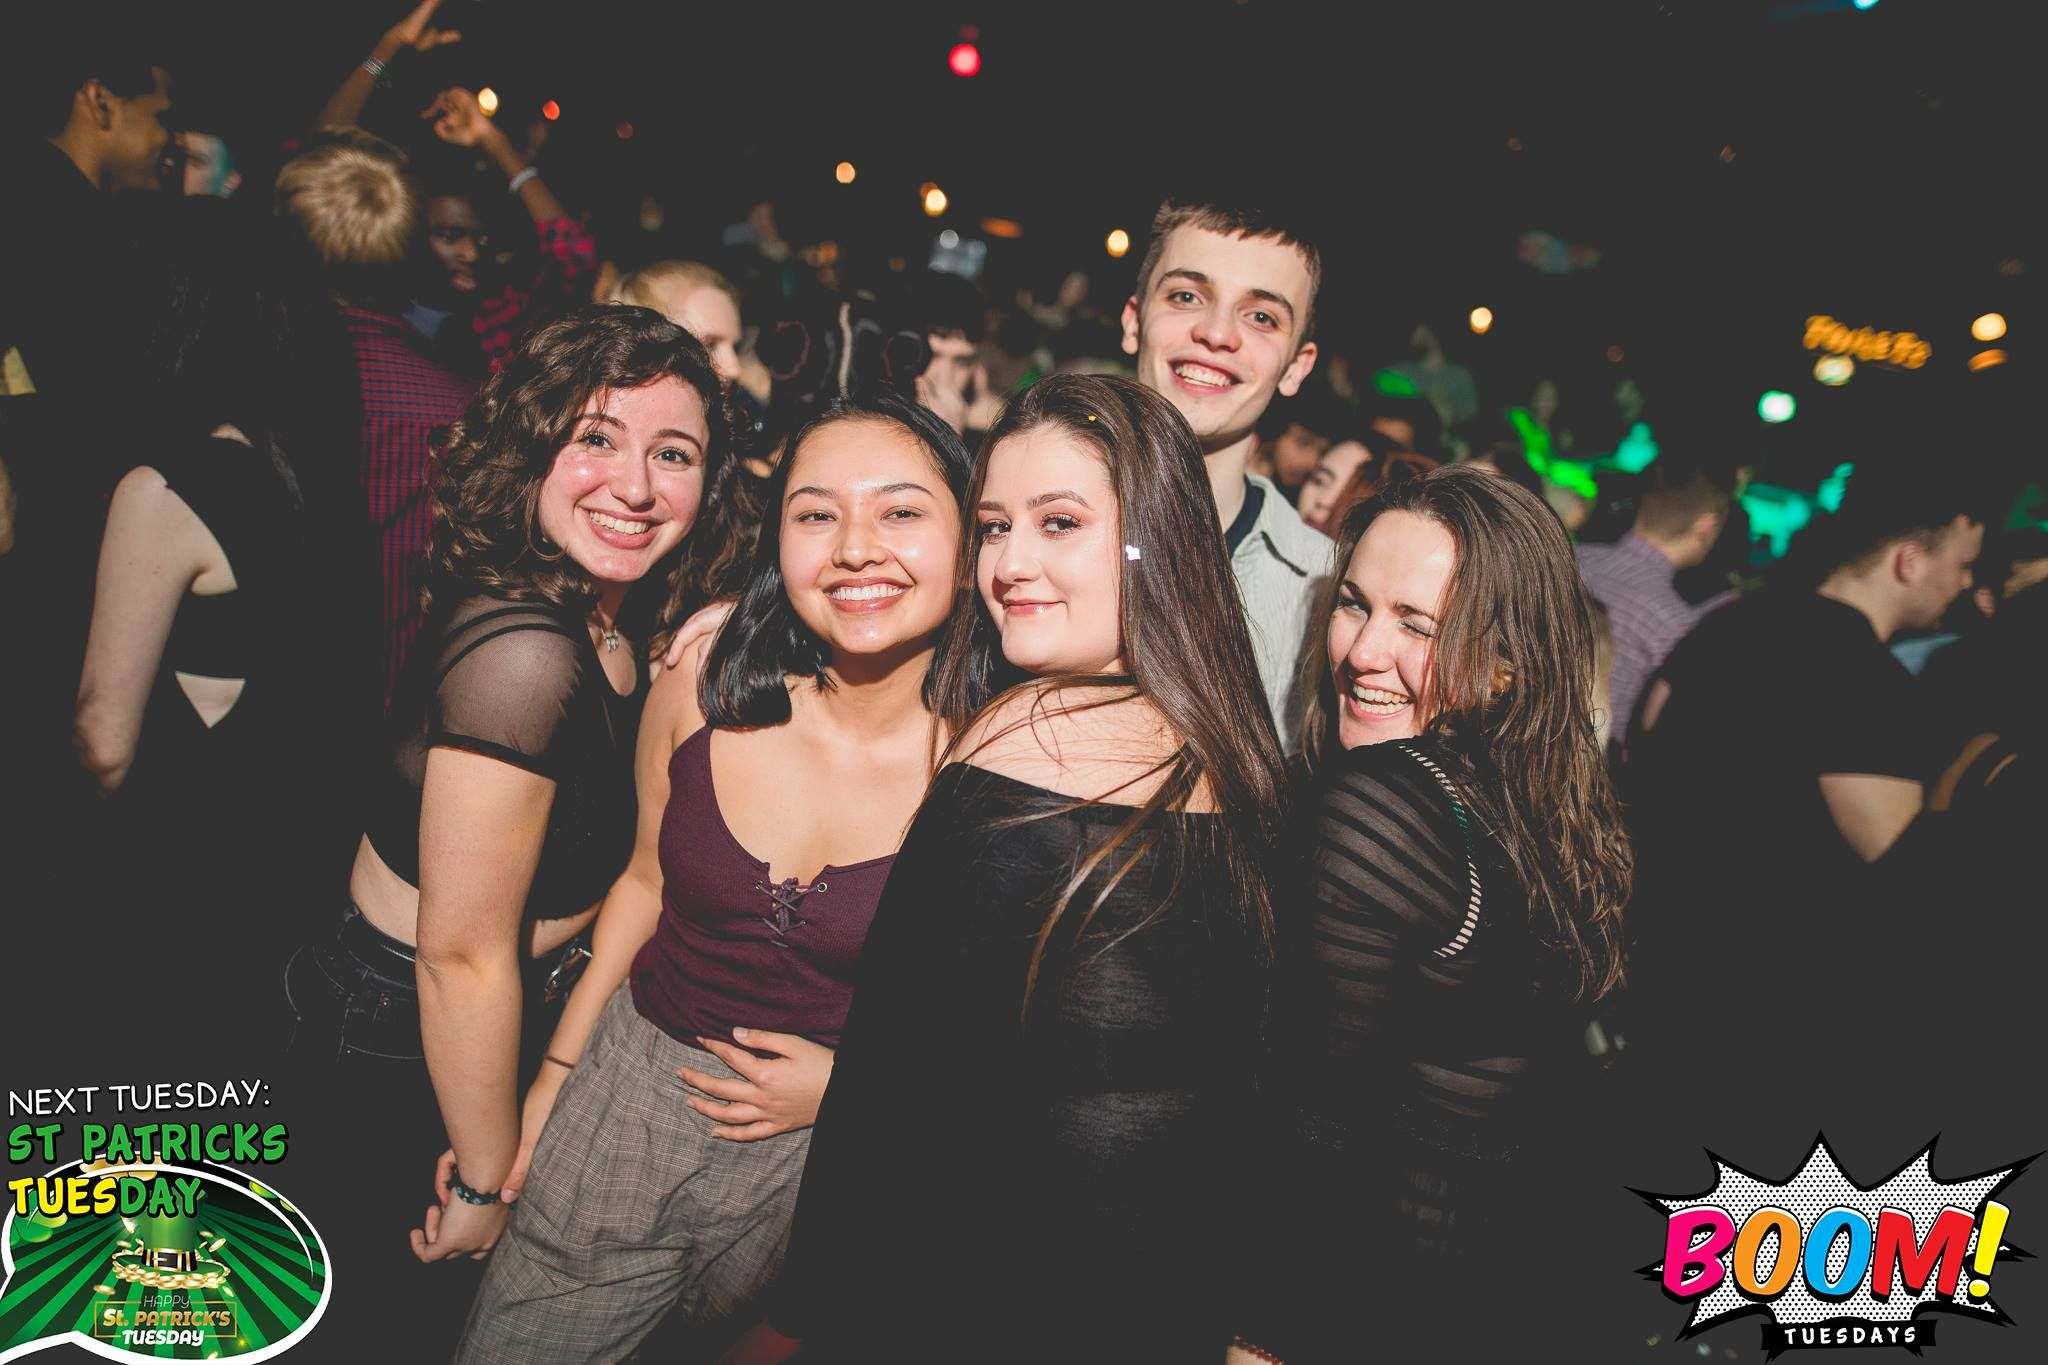 Image may contain: Crowd, Night Life, Night Club, Club, Paper, Flyer, Brochure, Music, Leisure Activities, Poster, Person, People, Human